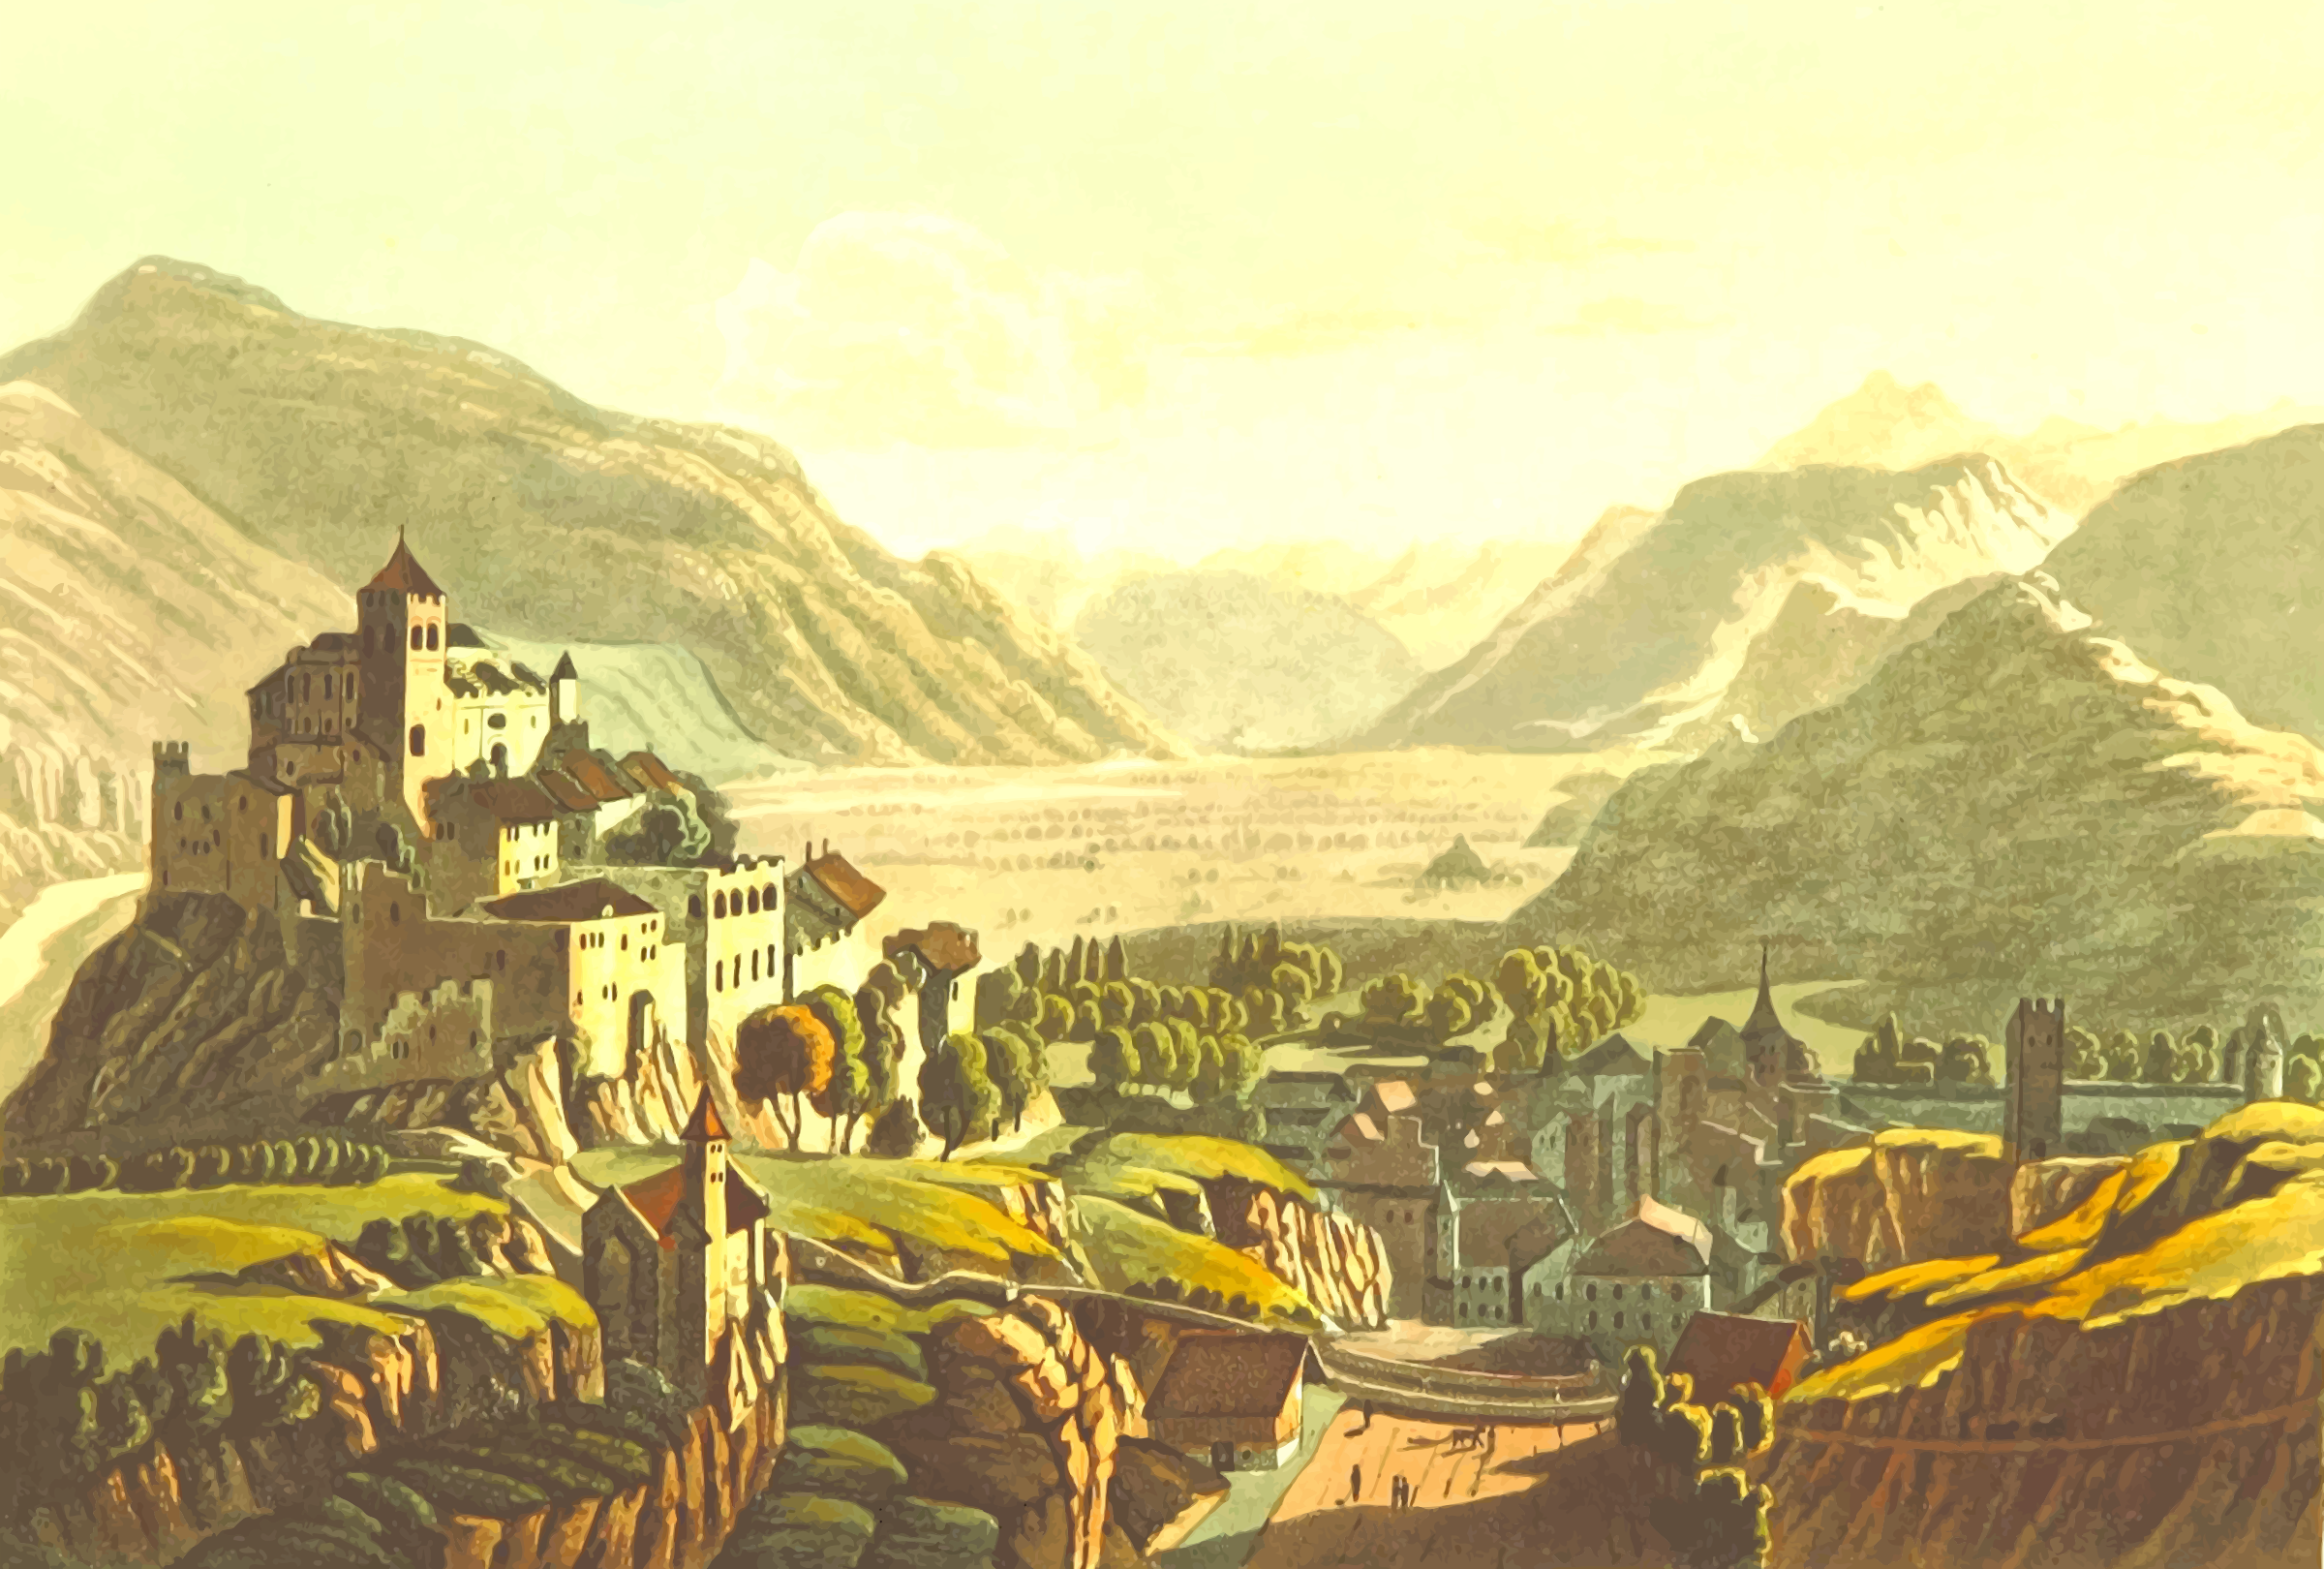 East view of Sion by Firkin